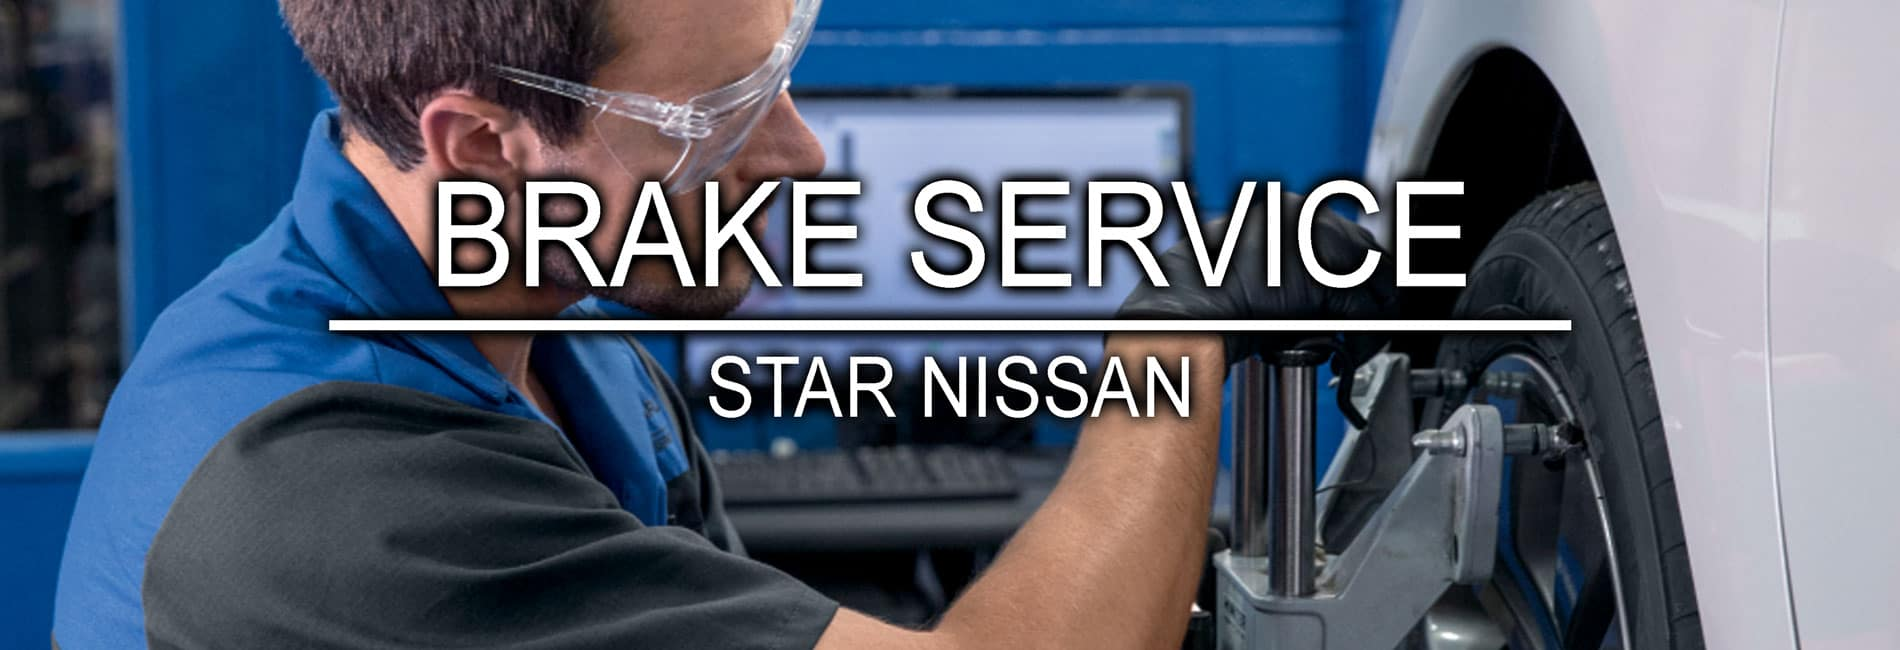 Niles Nissan Brake Service at Star Nissan